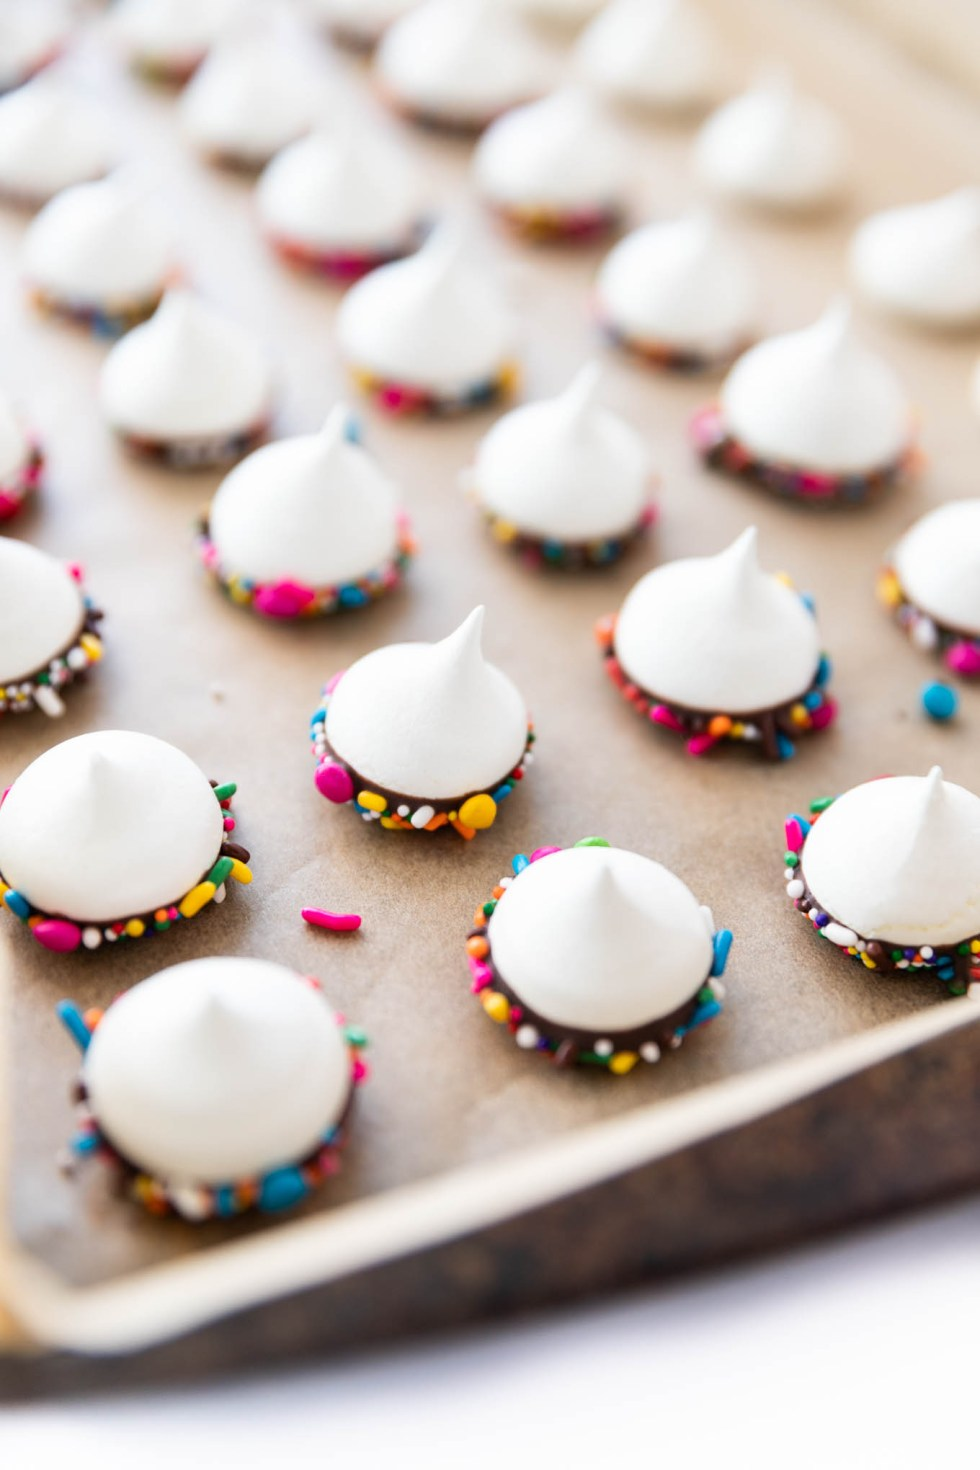 White meringues with halos of chocolate and colorful sprinkles sitting on parchment paper.